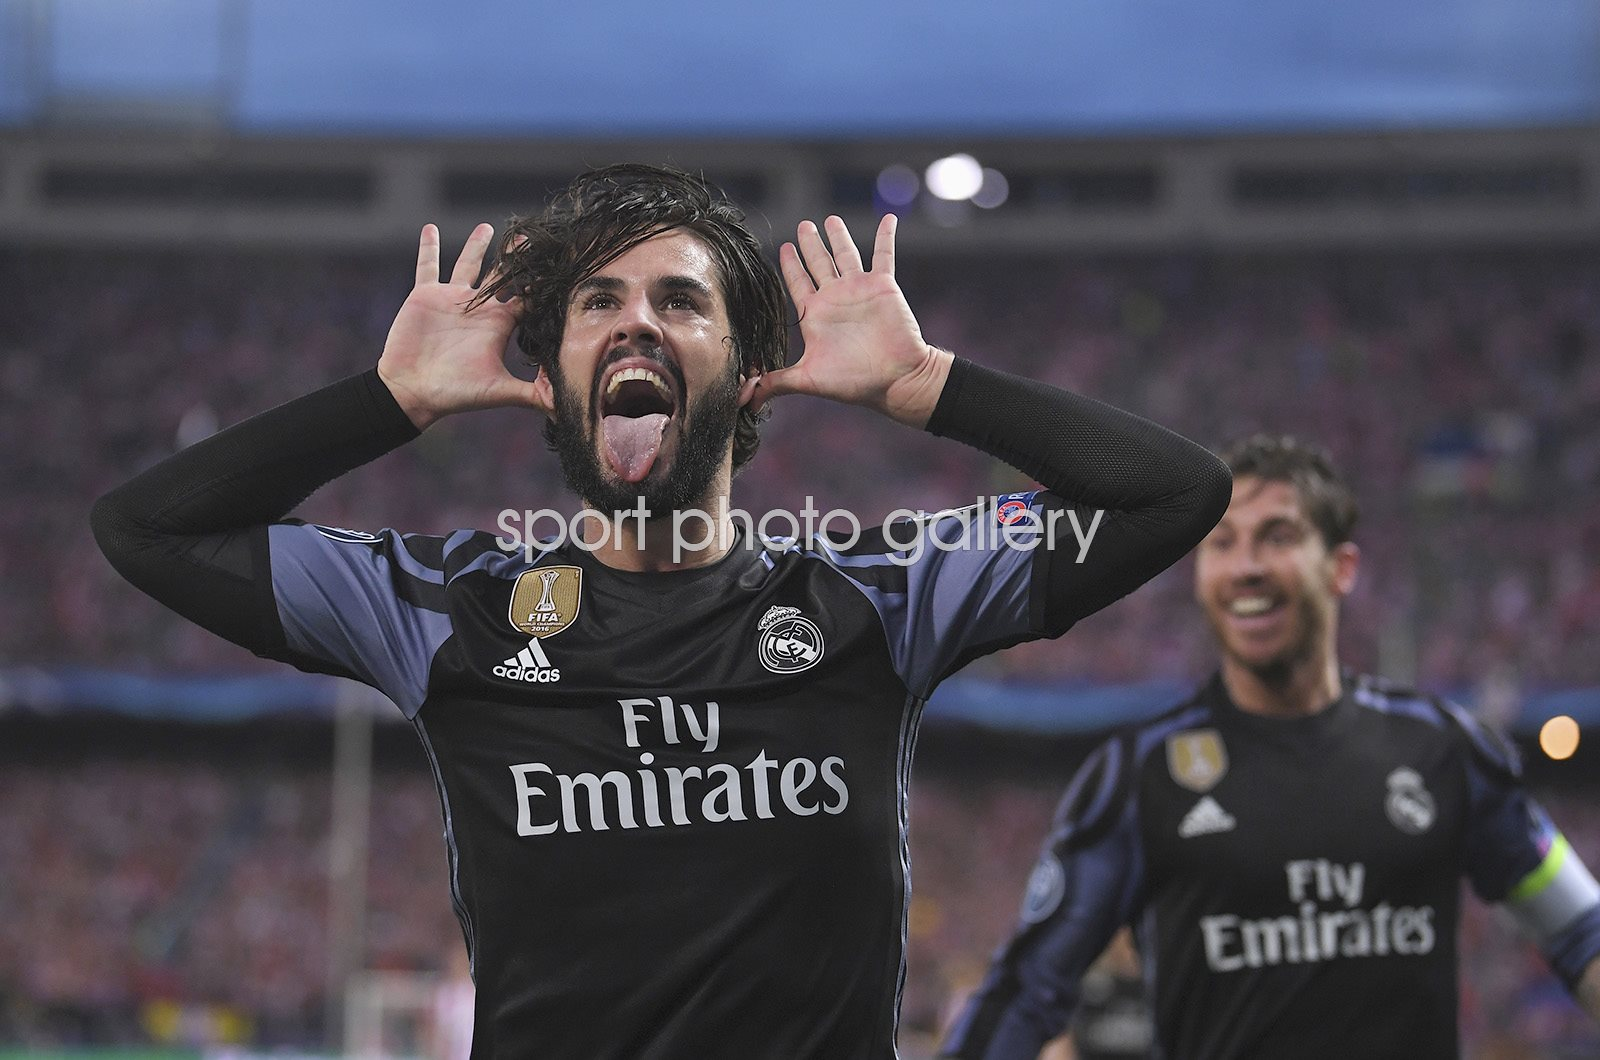 Isco of Real Madrid scores v Atletico Madrid Champions League 2017